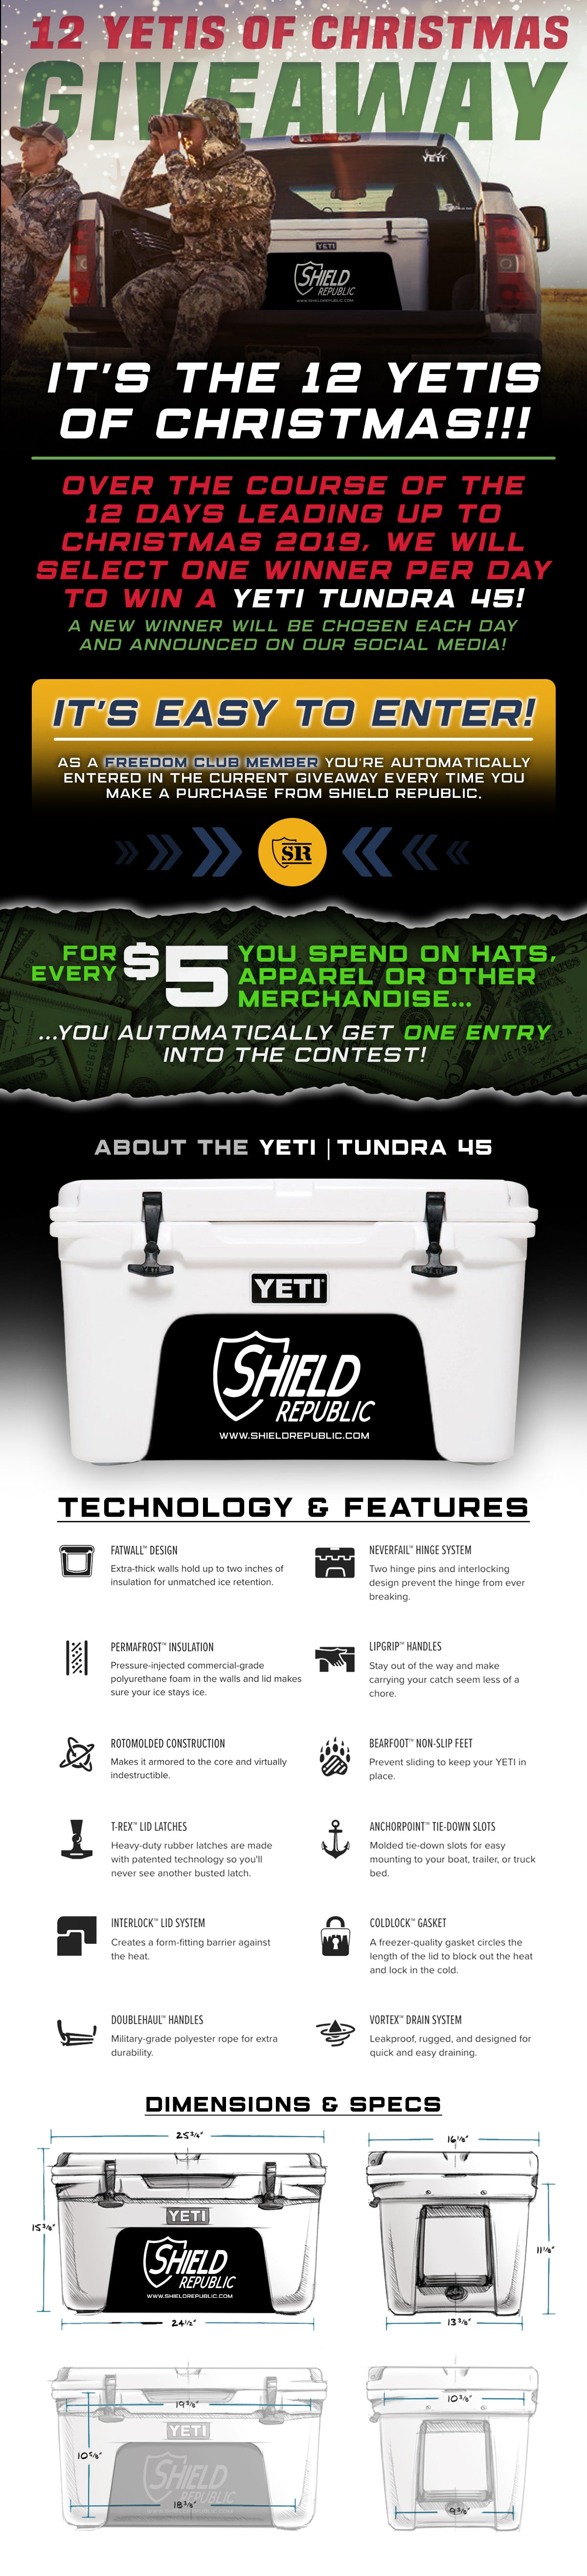 YETI Cooler Christmas Giveaway - Enter to win